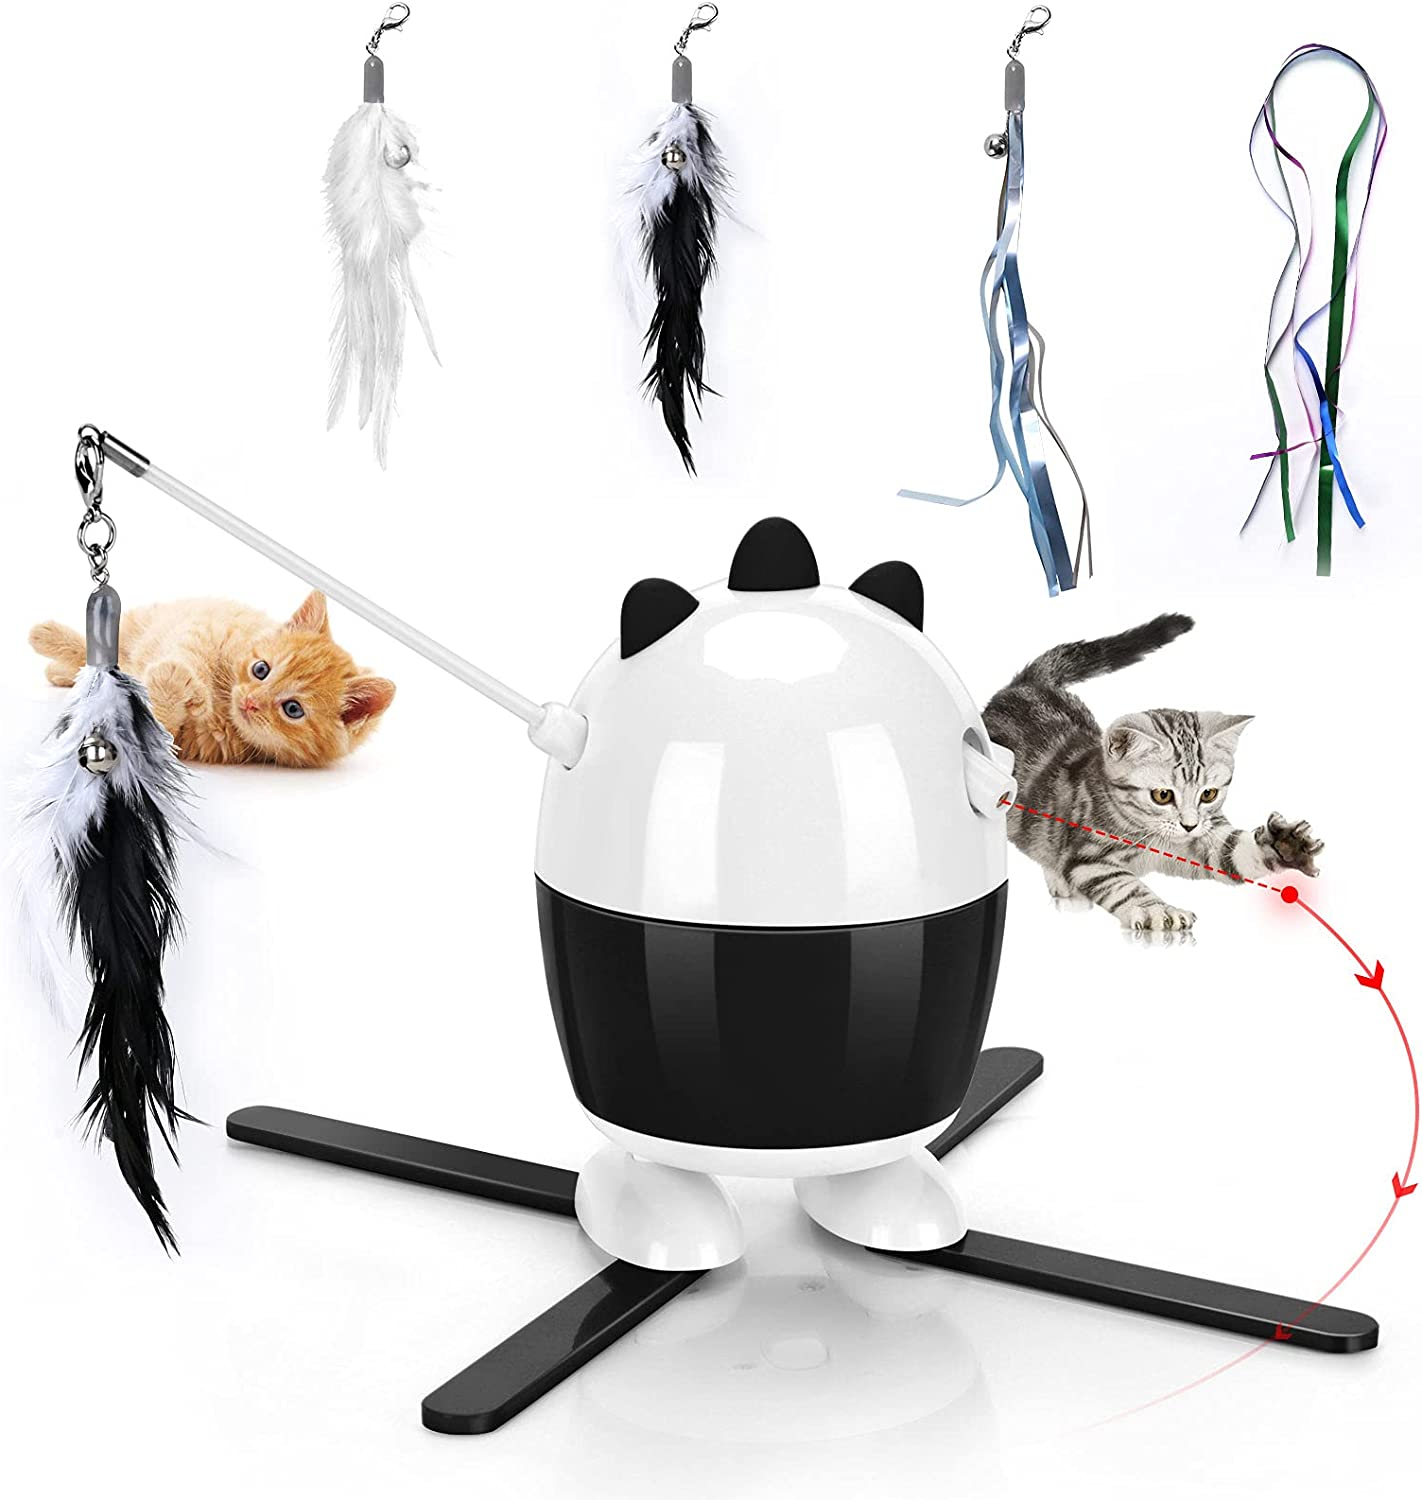 CatToysInteractive Cat Laser Cheap sale Toy Feather Toys 2 1 in Special price for a limited time R